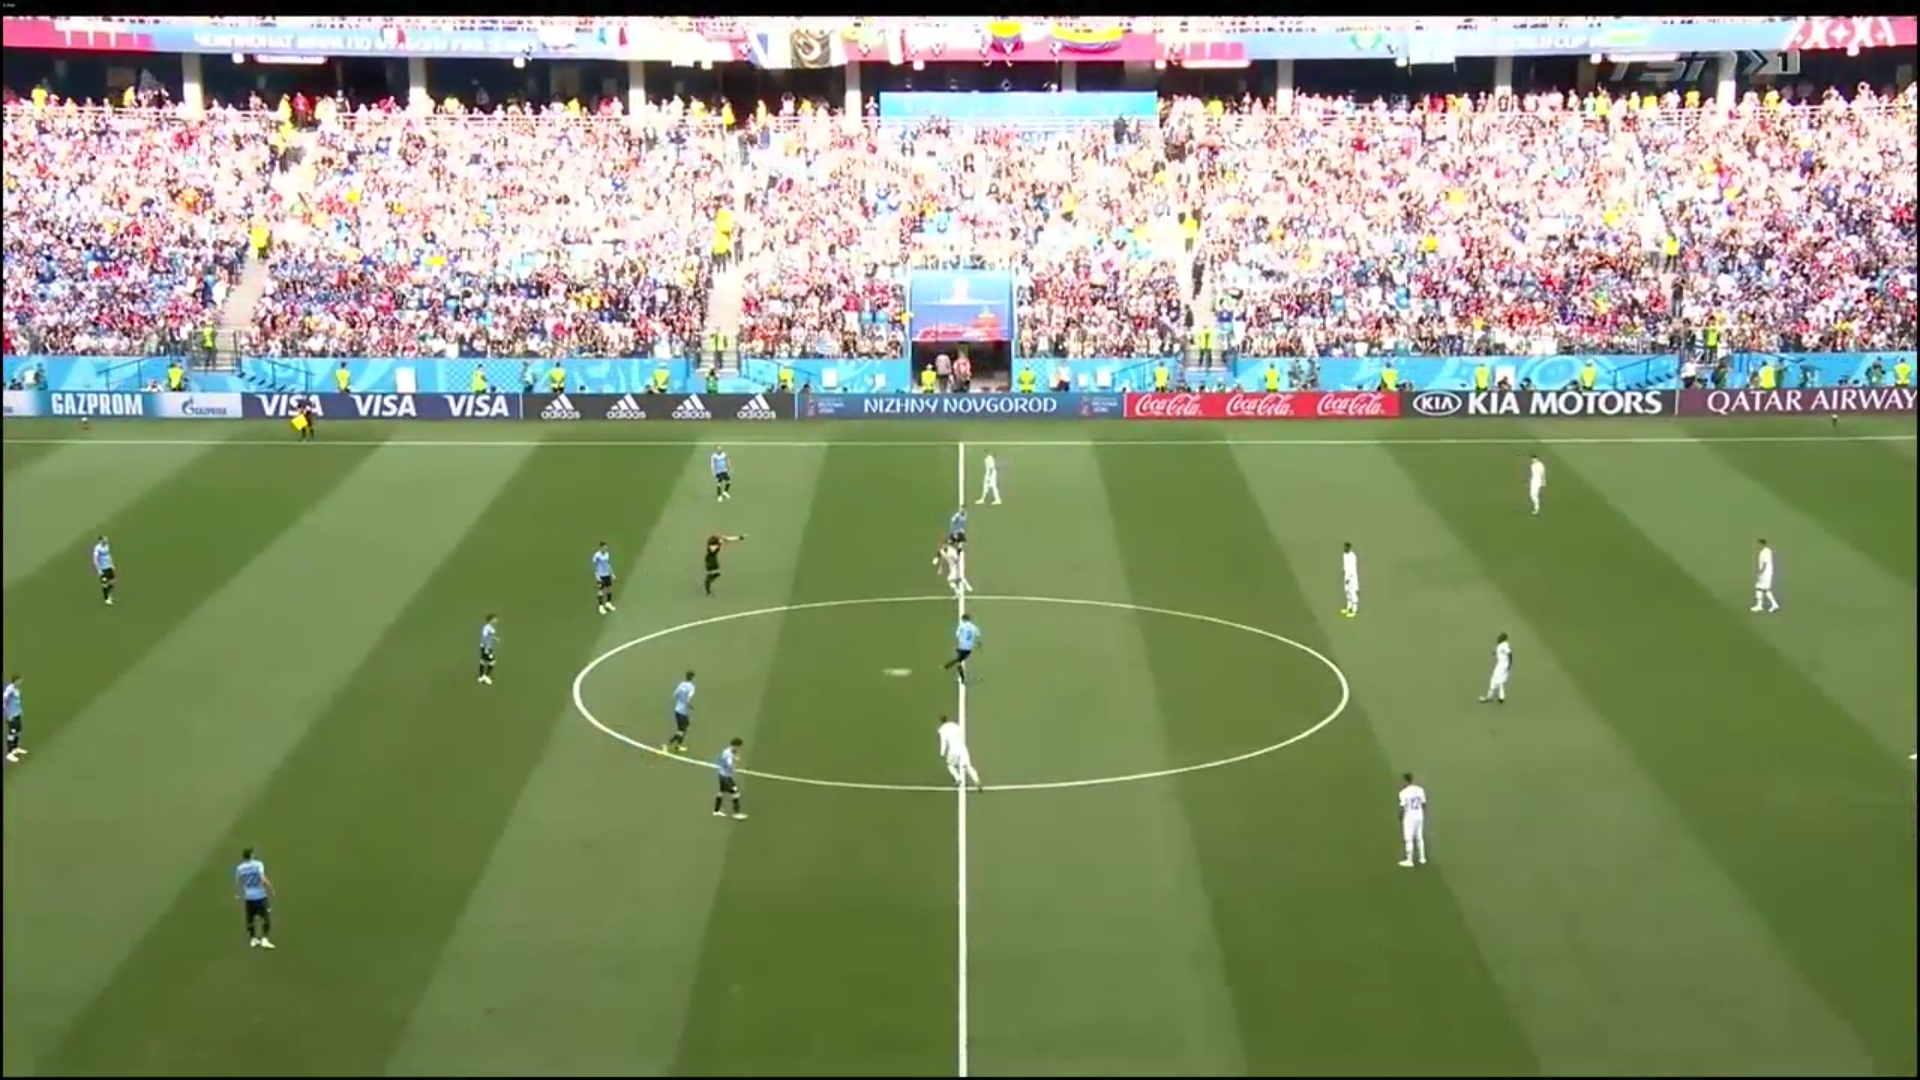 06-07-2018 - Uruguay 0-2 France (WORLD CUP 2018)